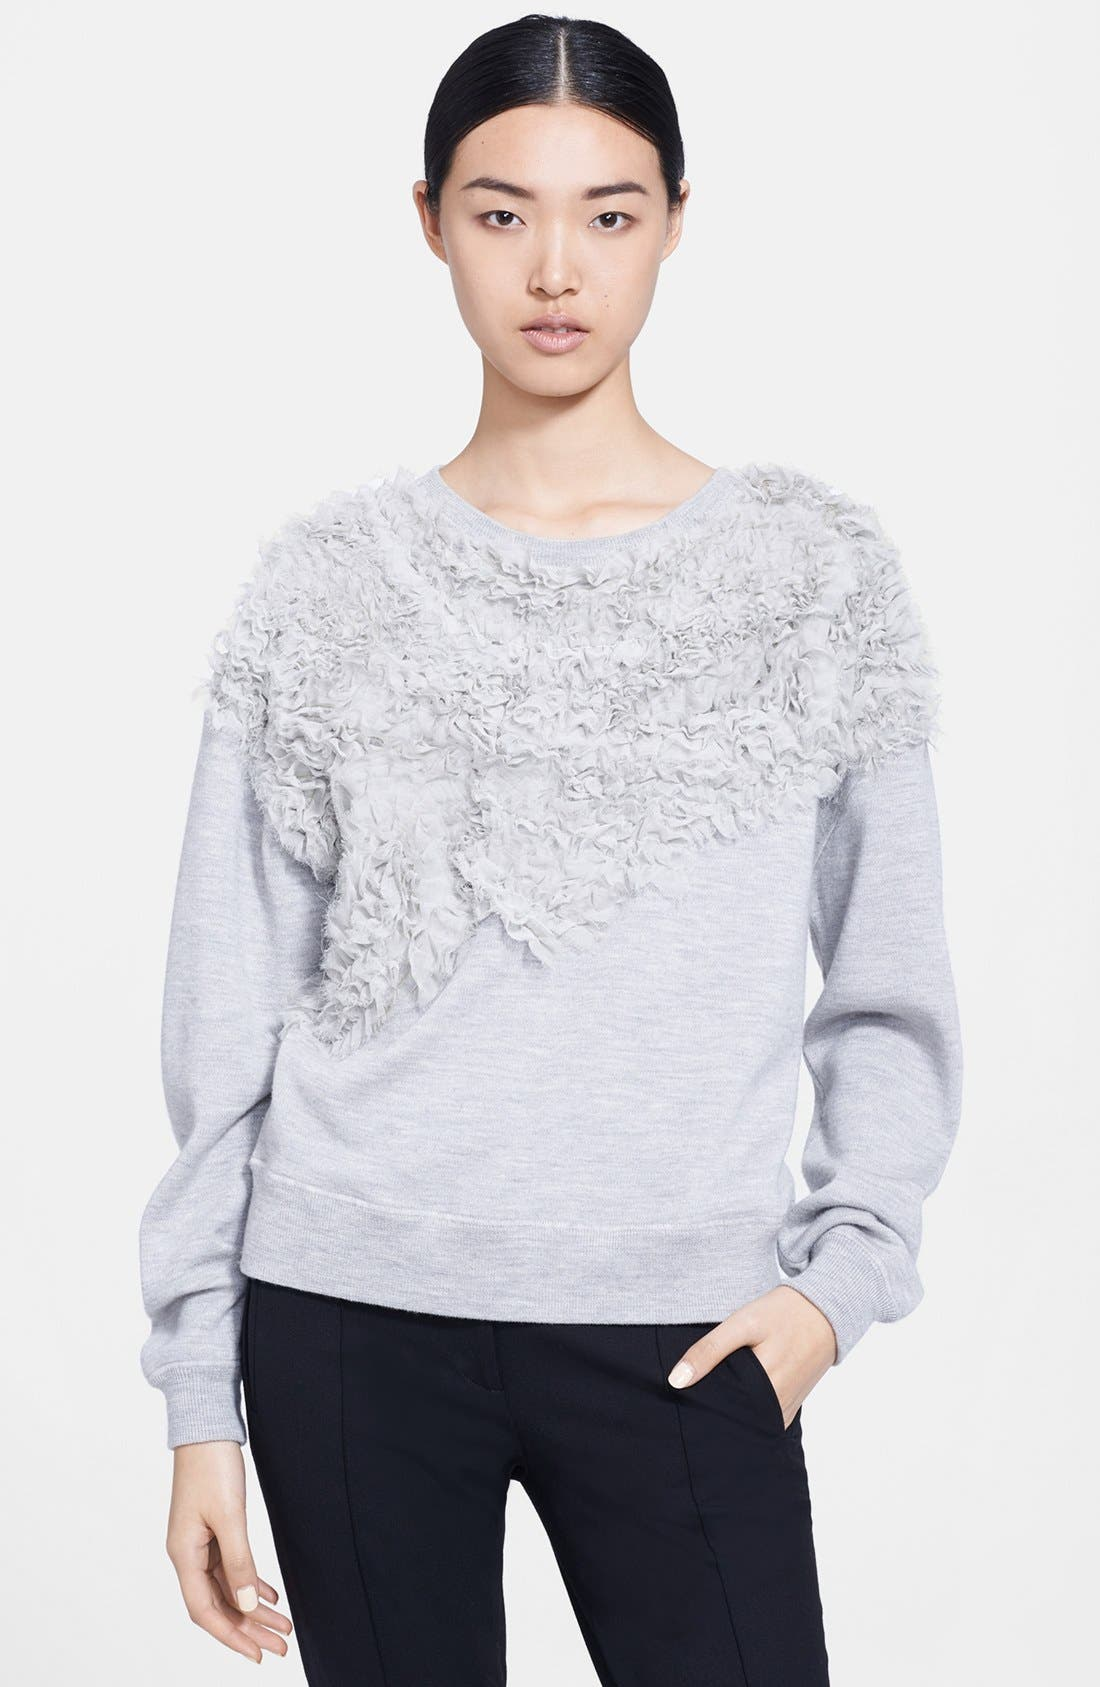 Alternate Image 1 Selected - Jason Wu Chiffon Appliqué Sweatshirt